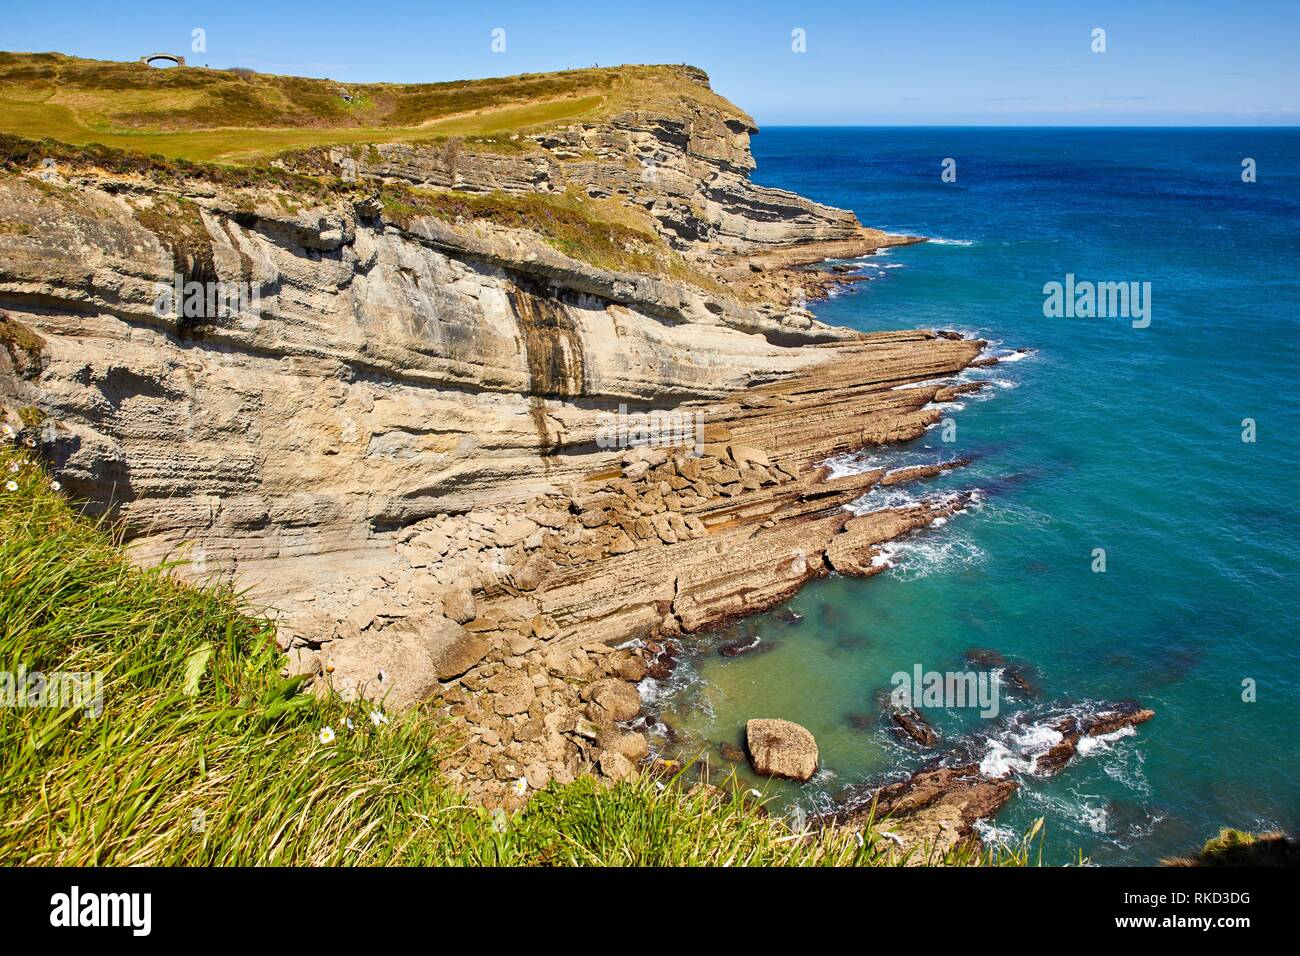 Viewpoint of the Lighthouse of Cabo Mayor, Santander, Cantabria, Spain, Europe - Stock Image